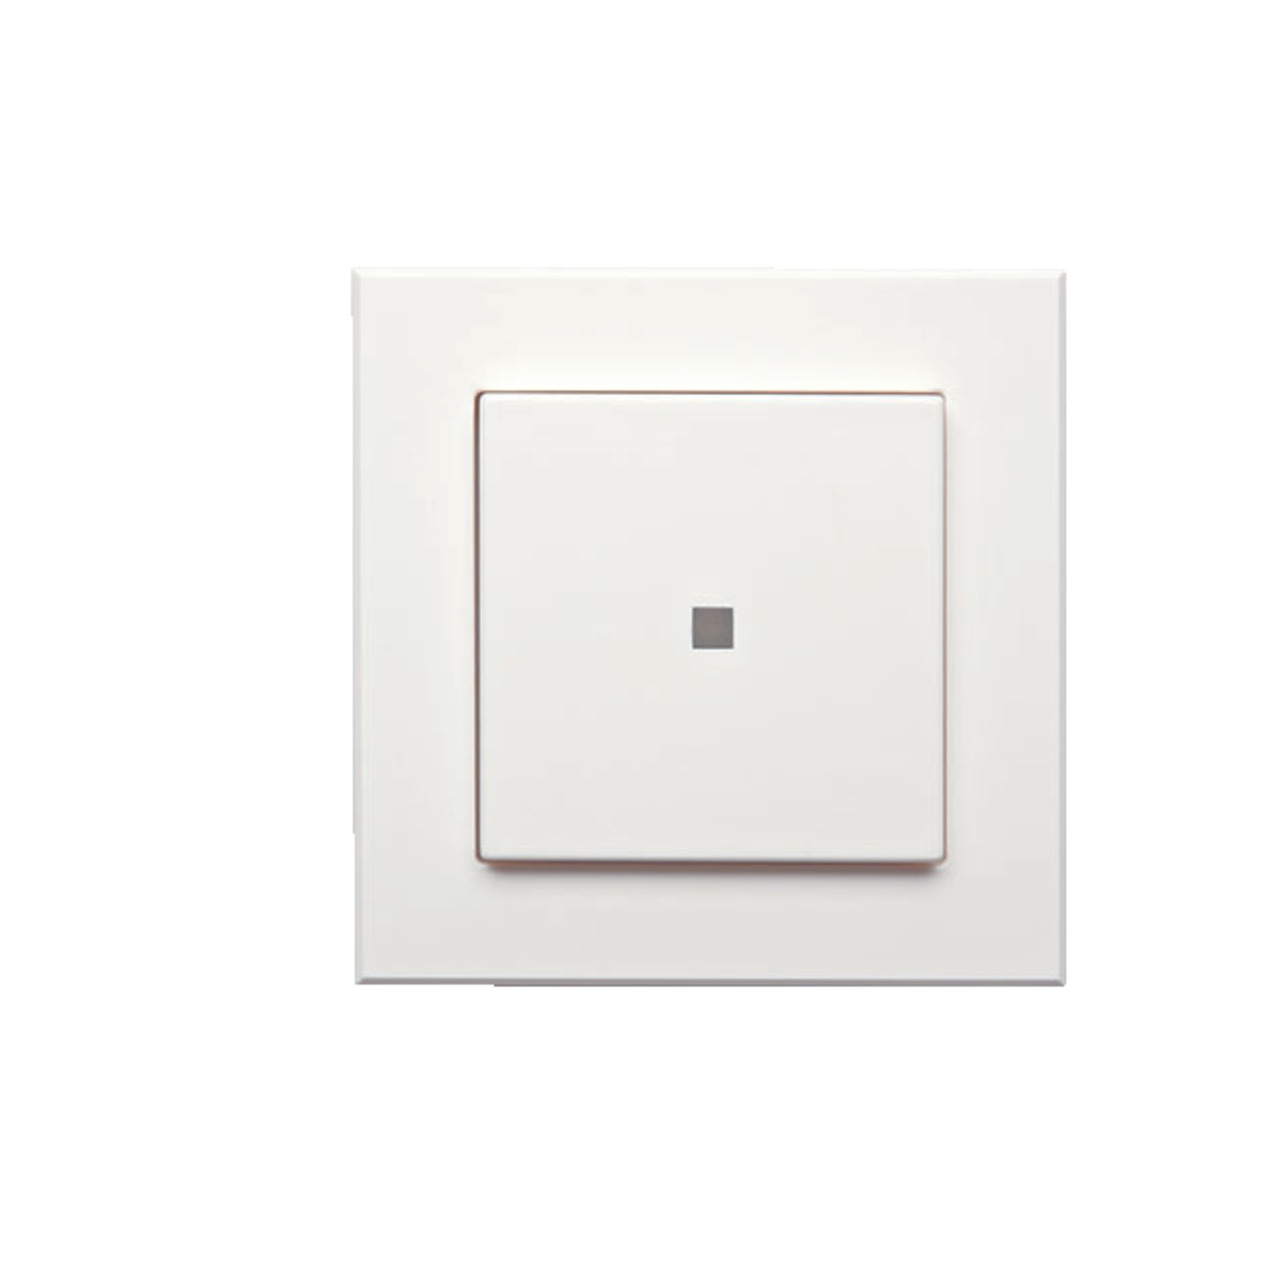 ELV Homematic Bausatz 2fach-Funk-Wandsender HMPB-2-WM55- für Smart Home - Hausautomation